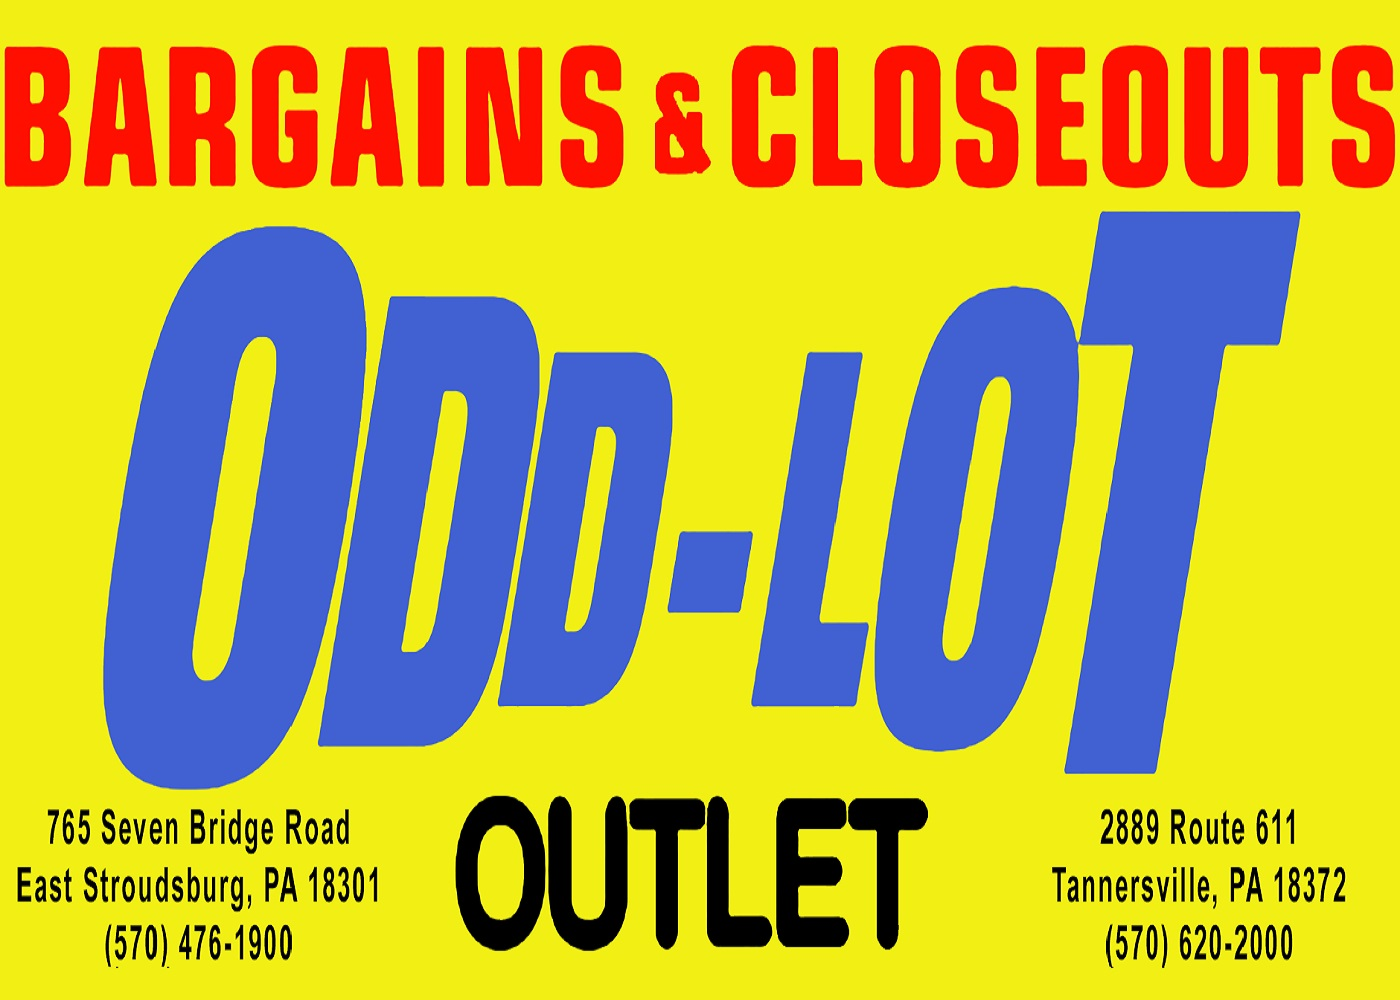 outlet bartonsville gift pa Adult